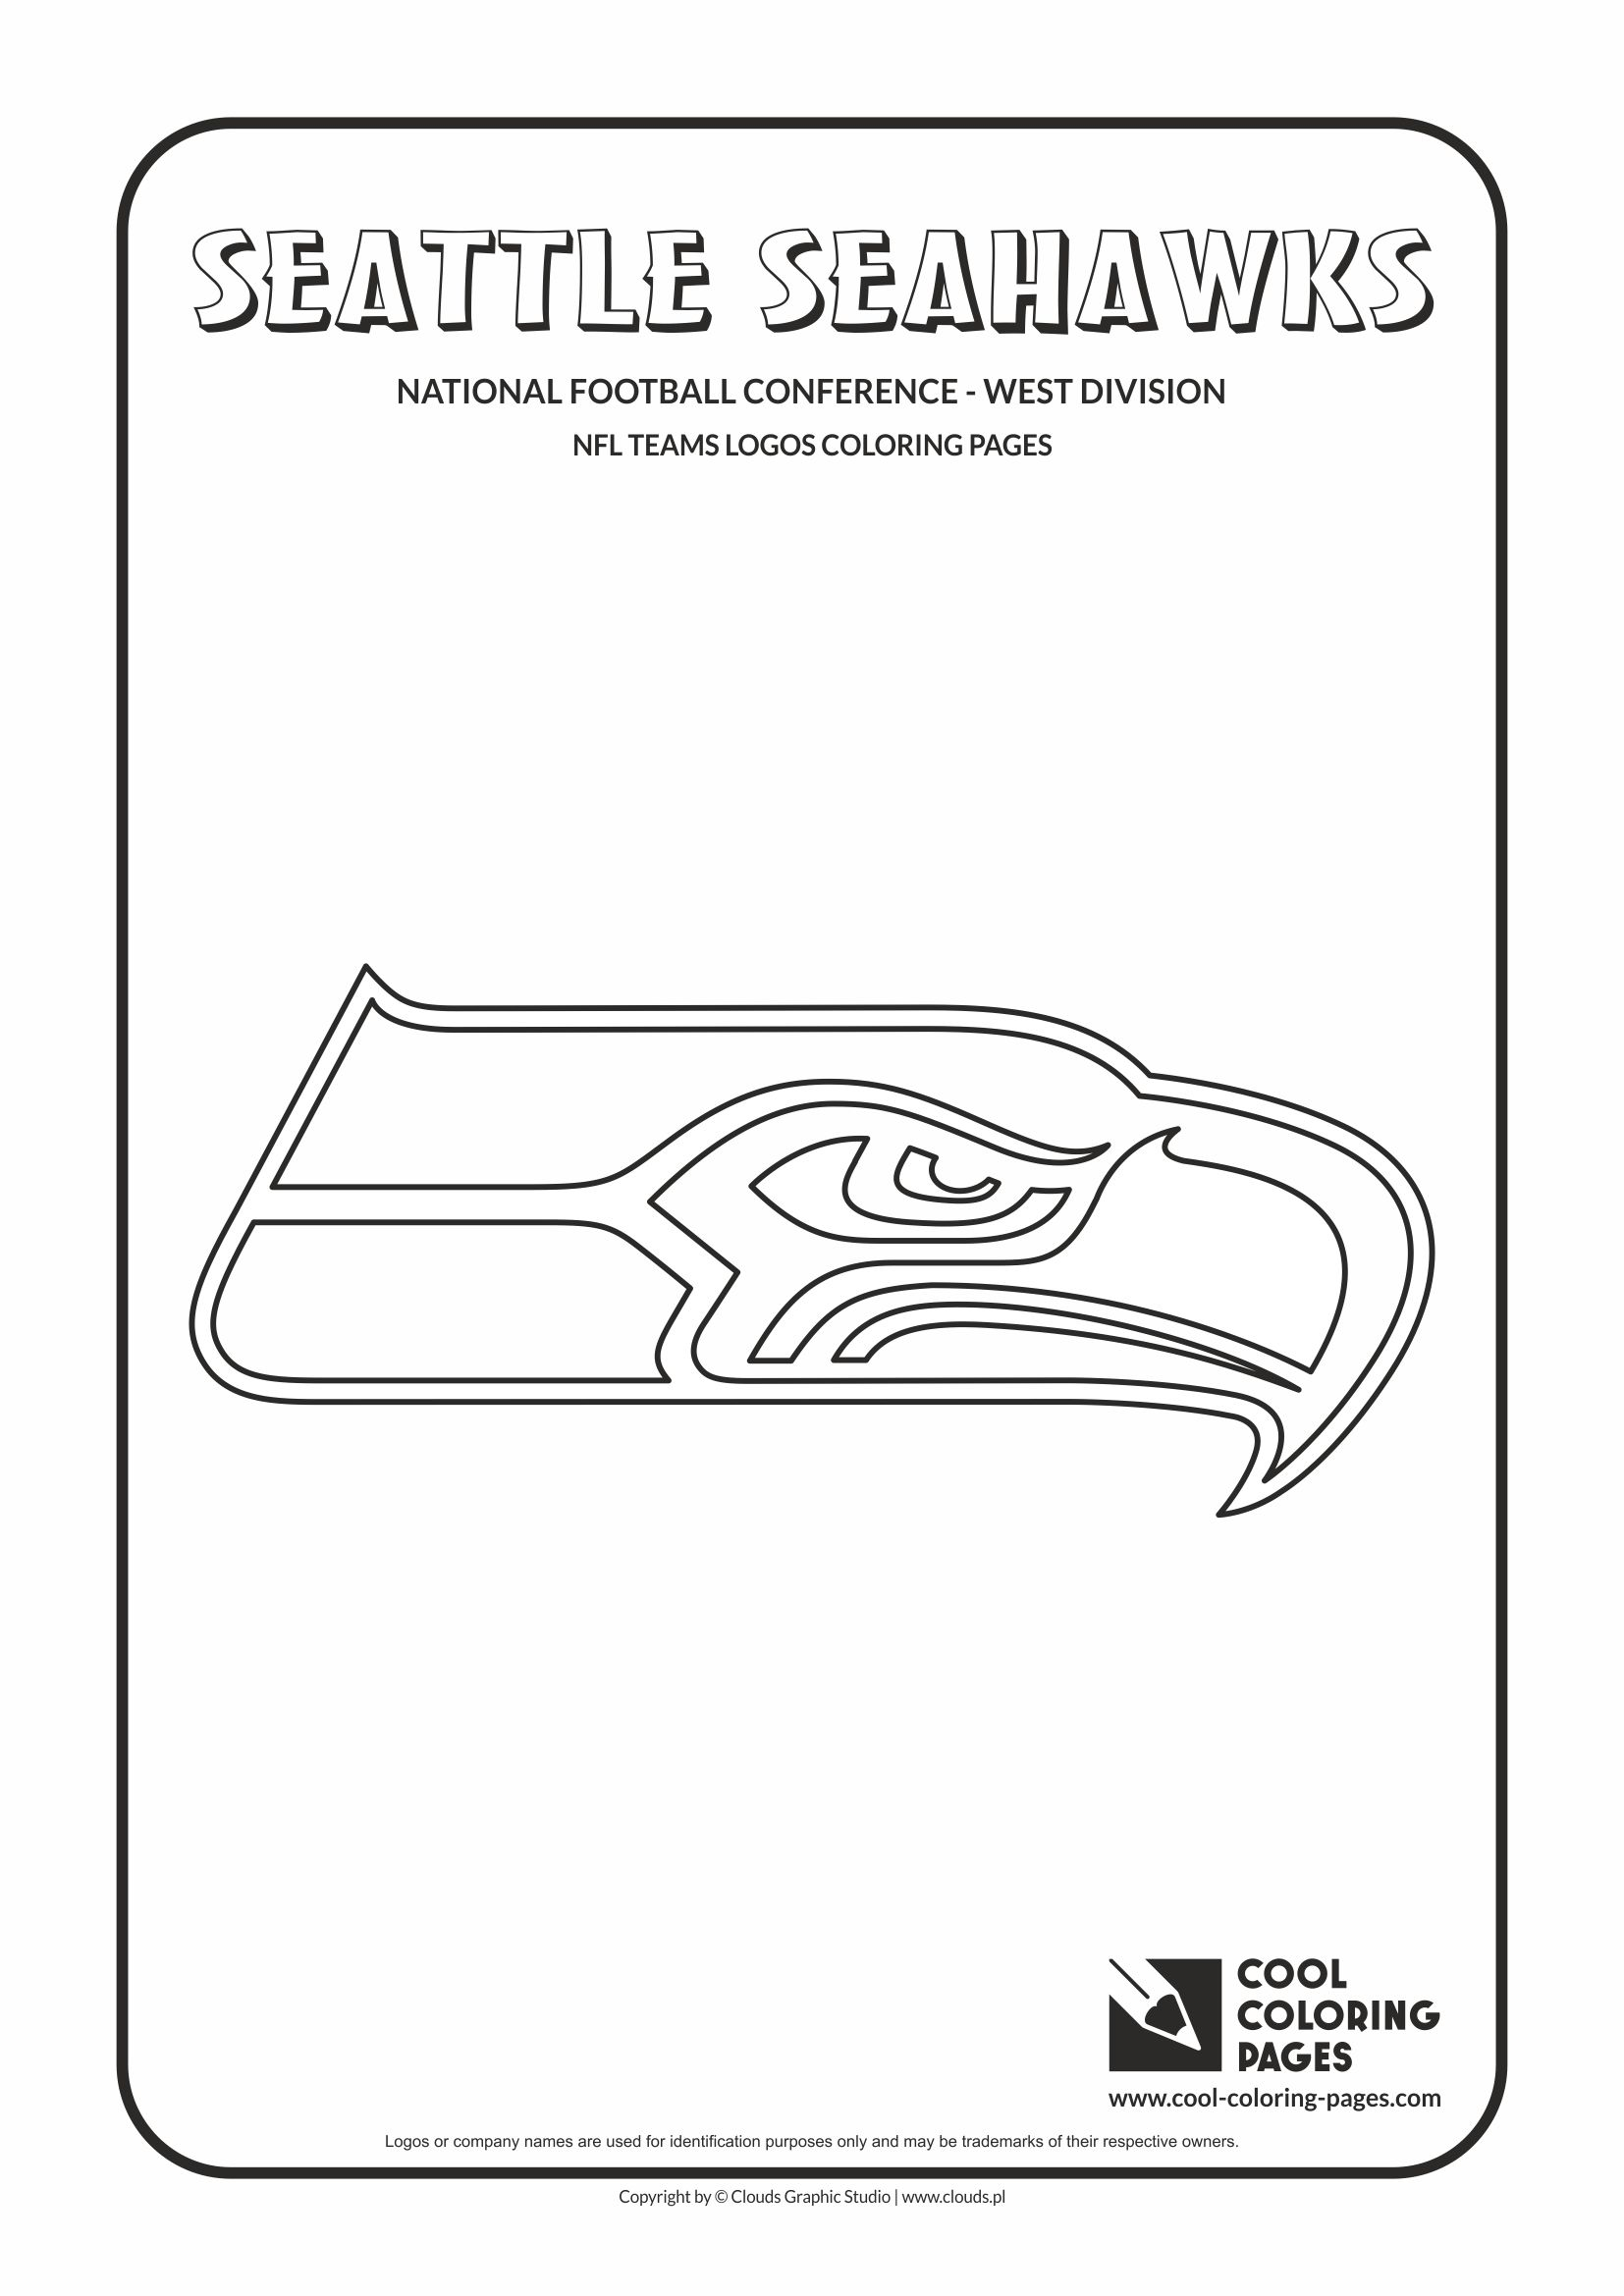 cool-coloring-pages-nfl-teams-logos-seattle-seahawks